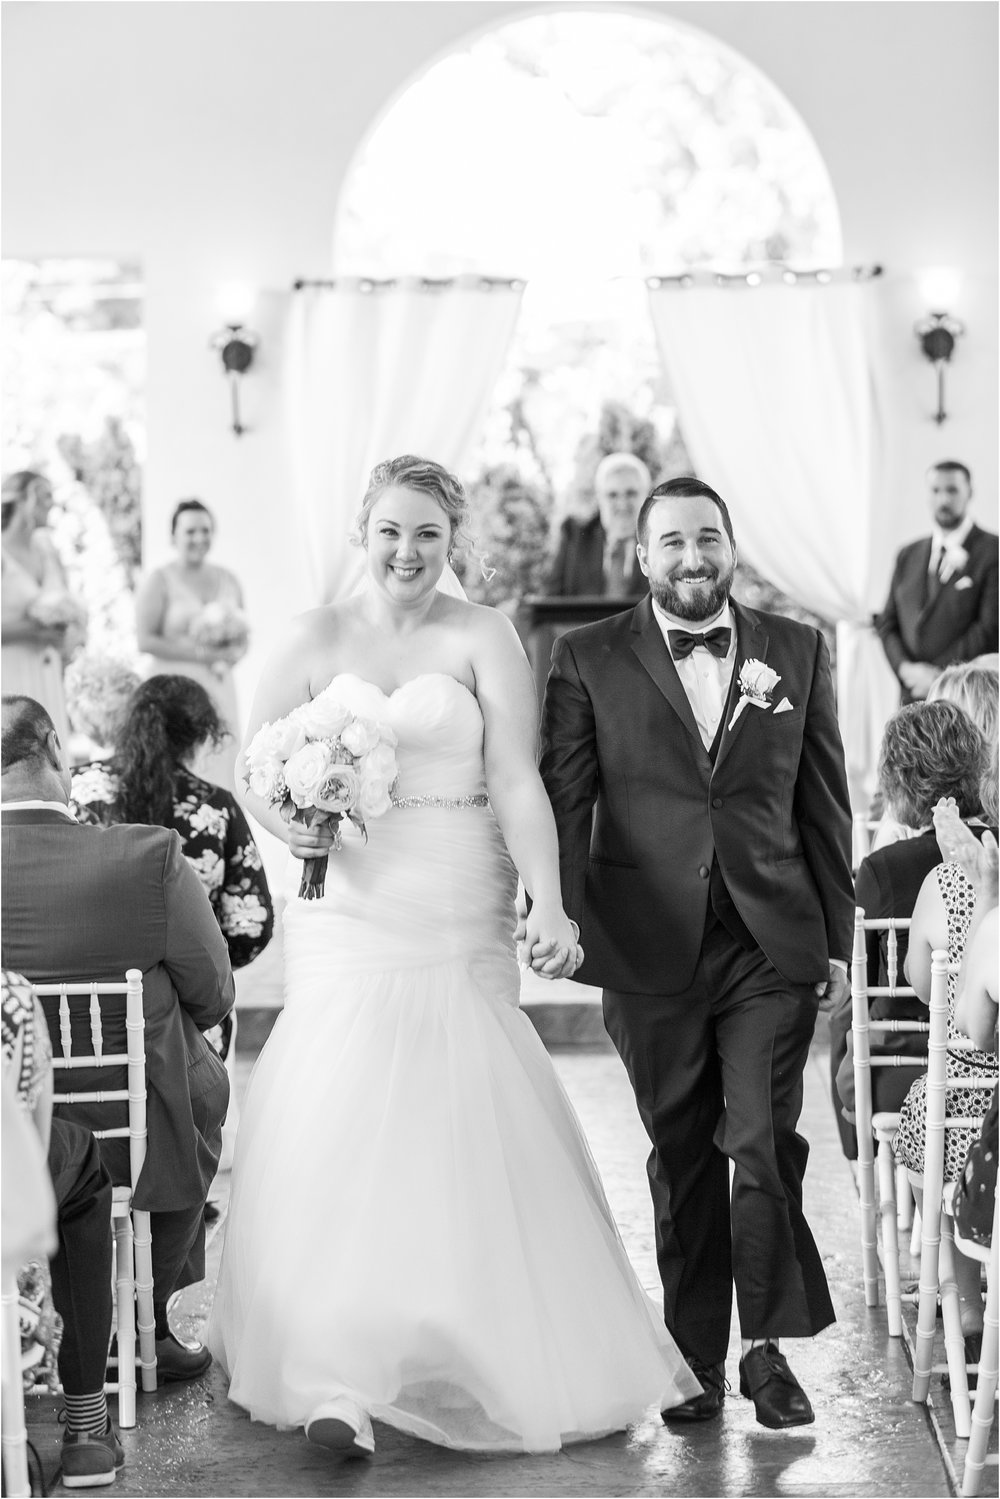 joyful-and-candid-navy-blush-wedding-photos-at-crystal-gardens-in-howell-mi-by-courtney-carolyn-photography_0057.jpg